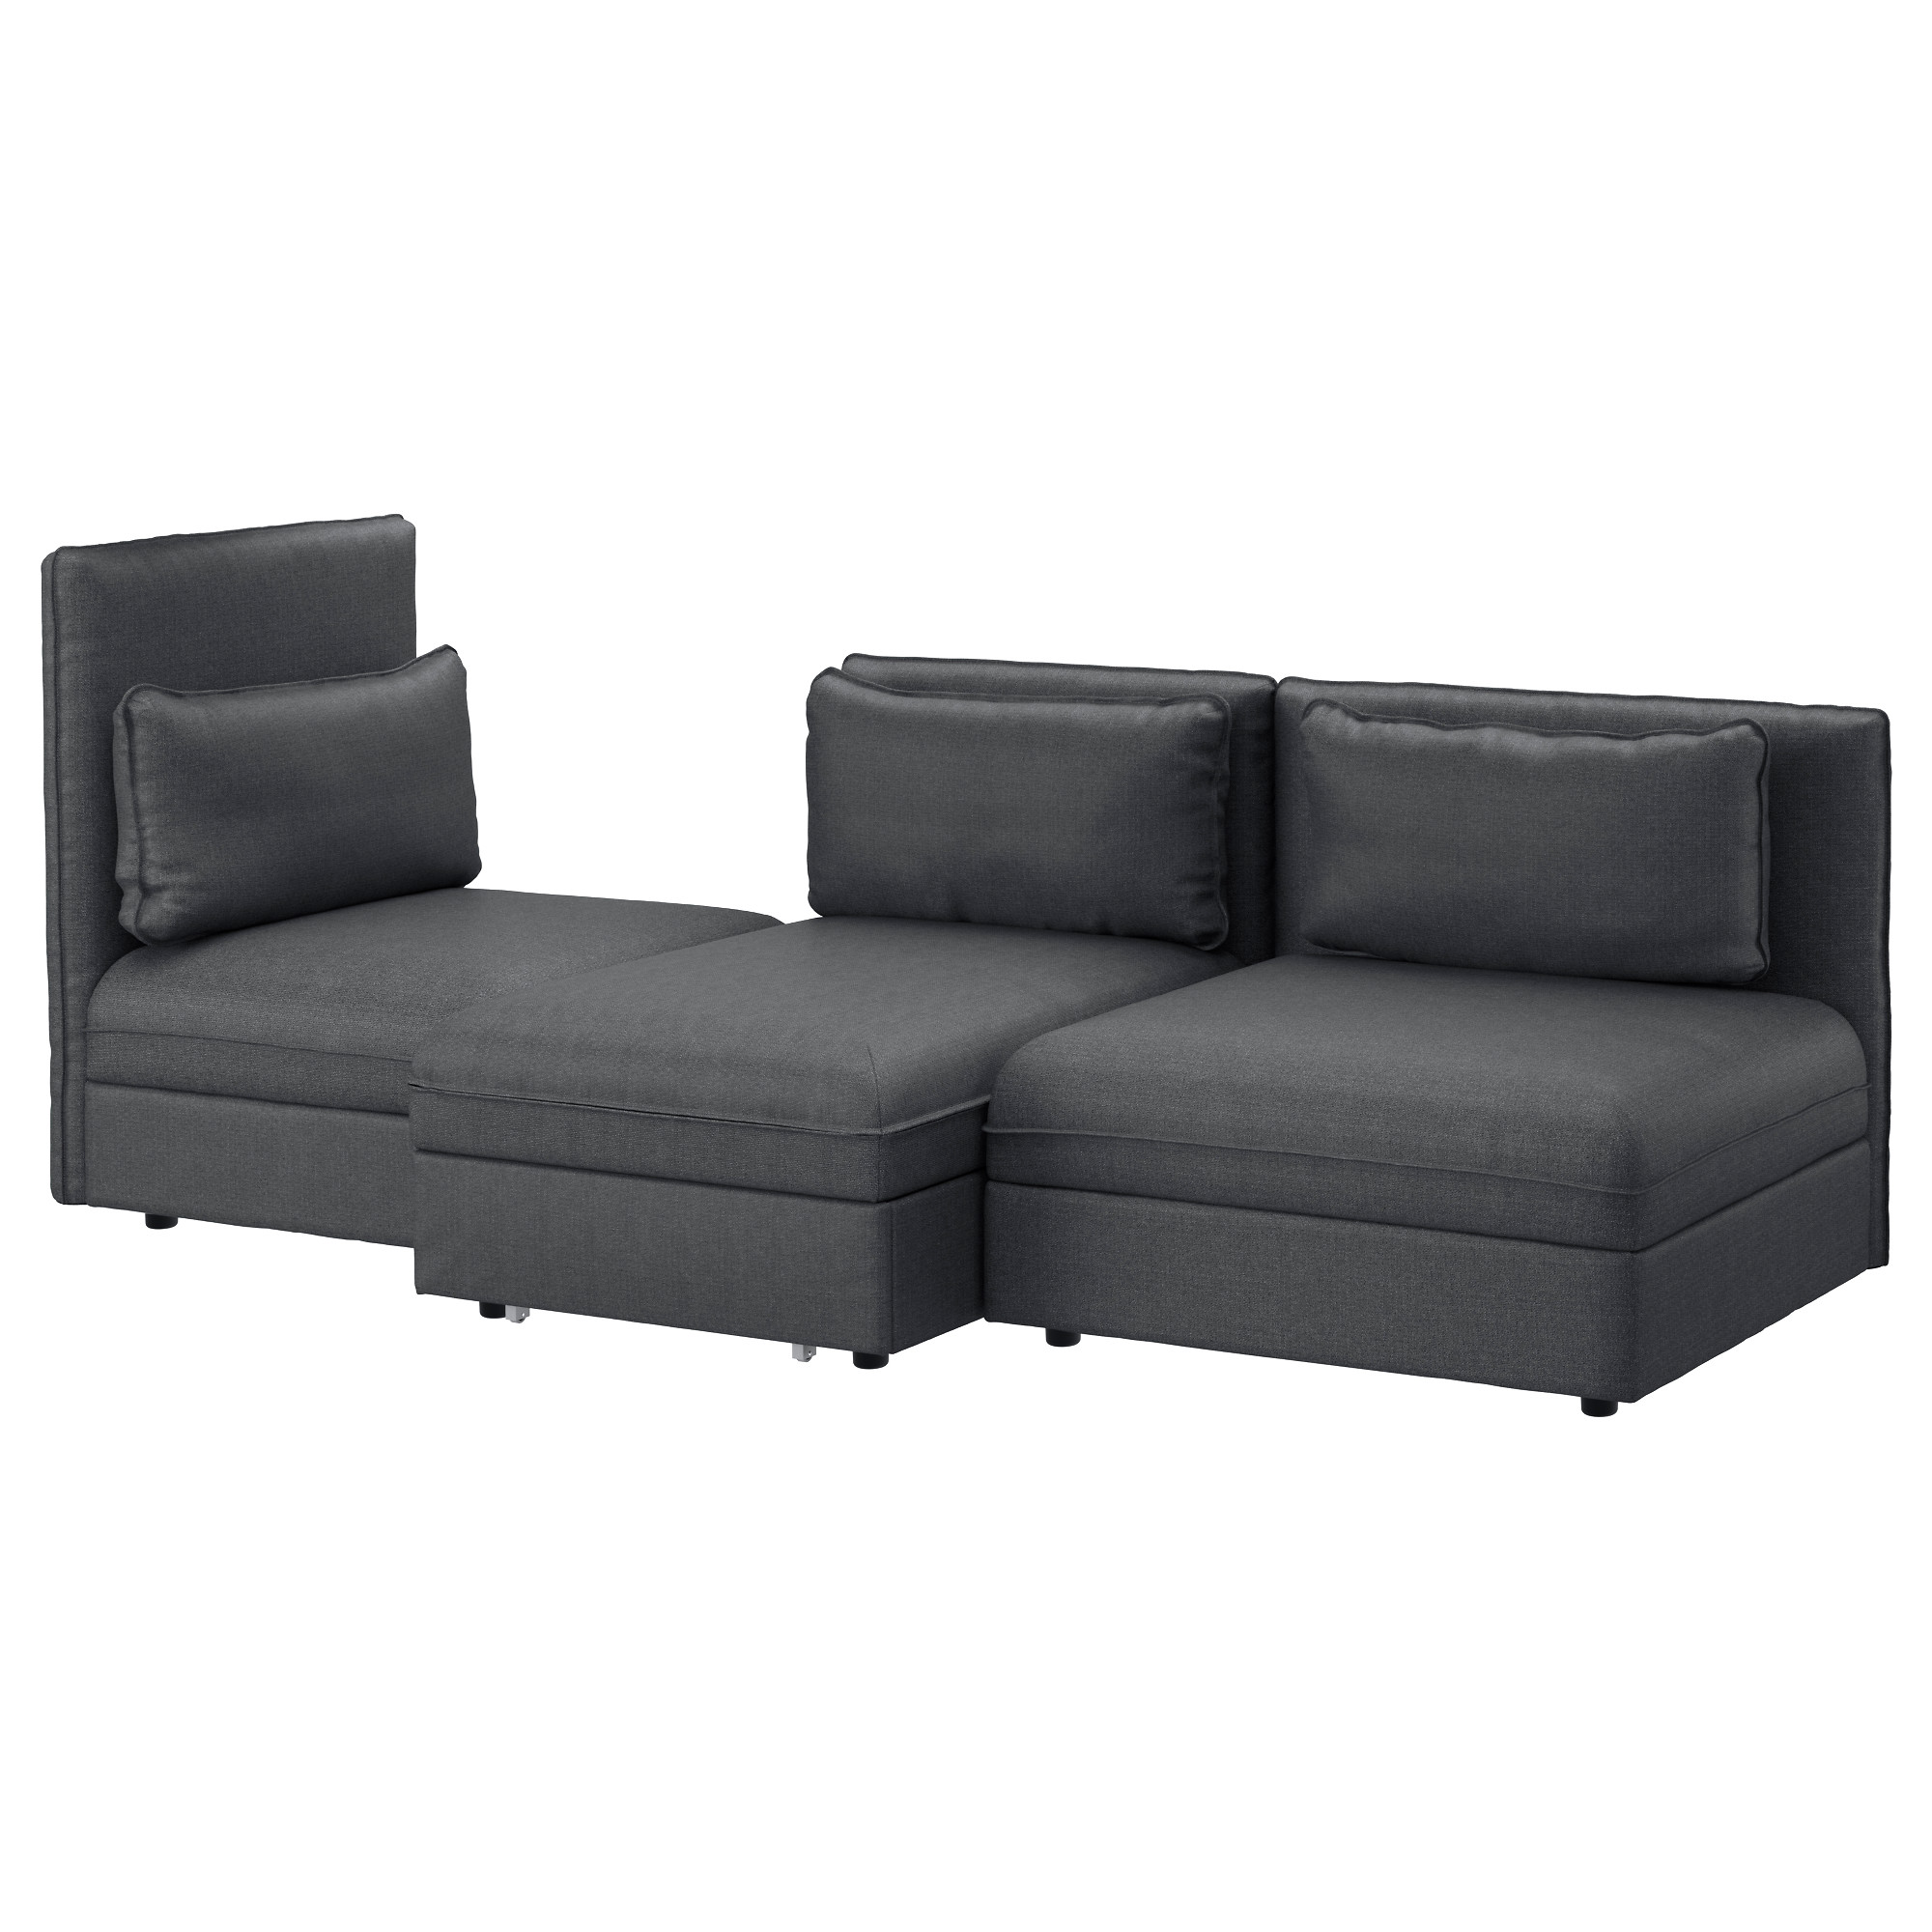 VALLENTUNA 3 seat sofa with bed Orrsta light grey Funnarp black